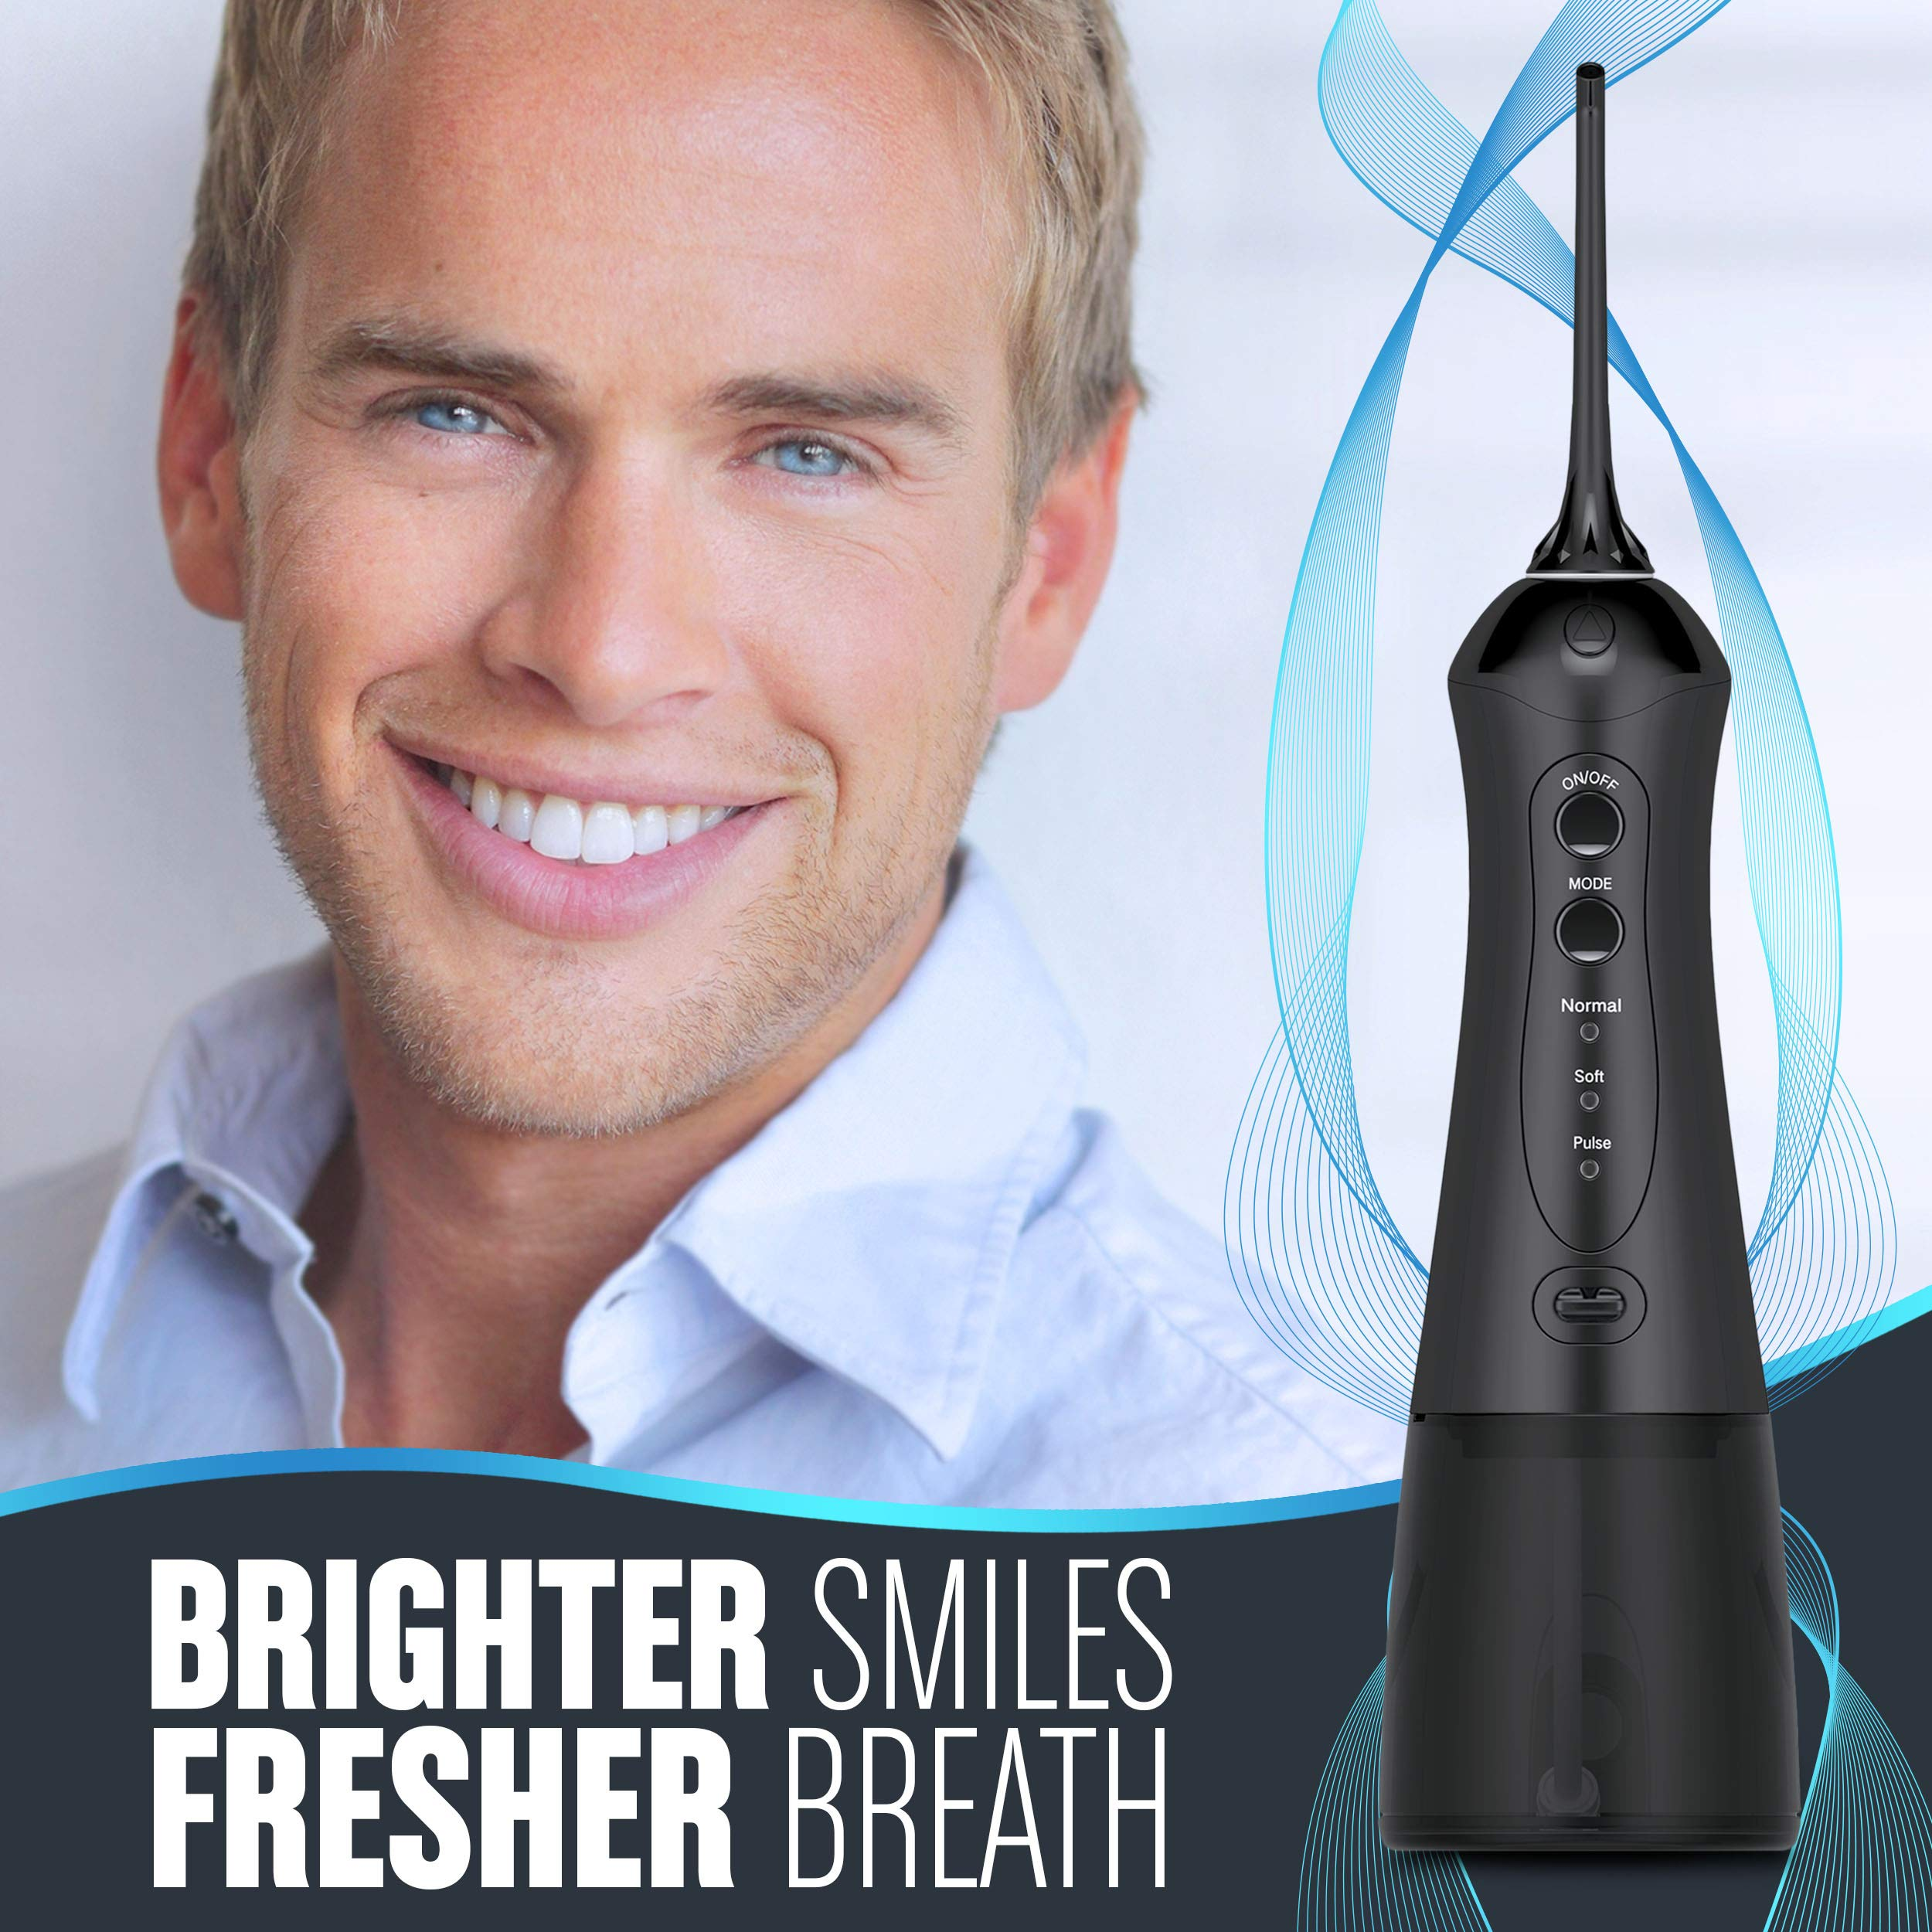 Cordless Water Flosser for Teeth - Smile Brighter with a Portable Waterflosser - Rechargeable Water Flosser/Oral Irrigator with 2 Heads, Travel Case and USB Charger by IDLTD (Image #4)